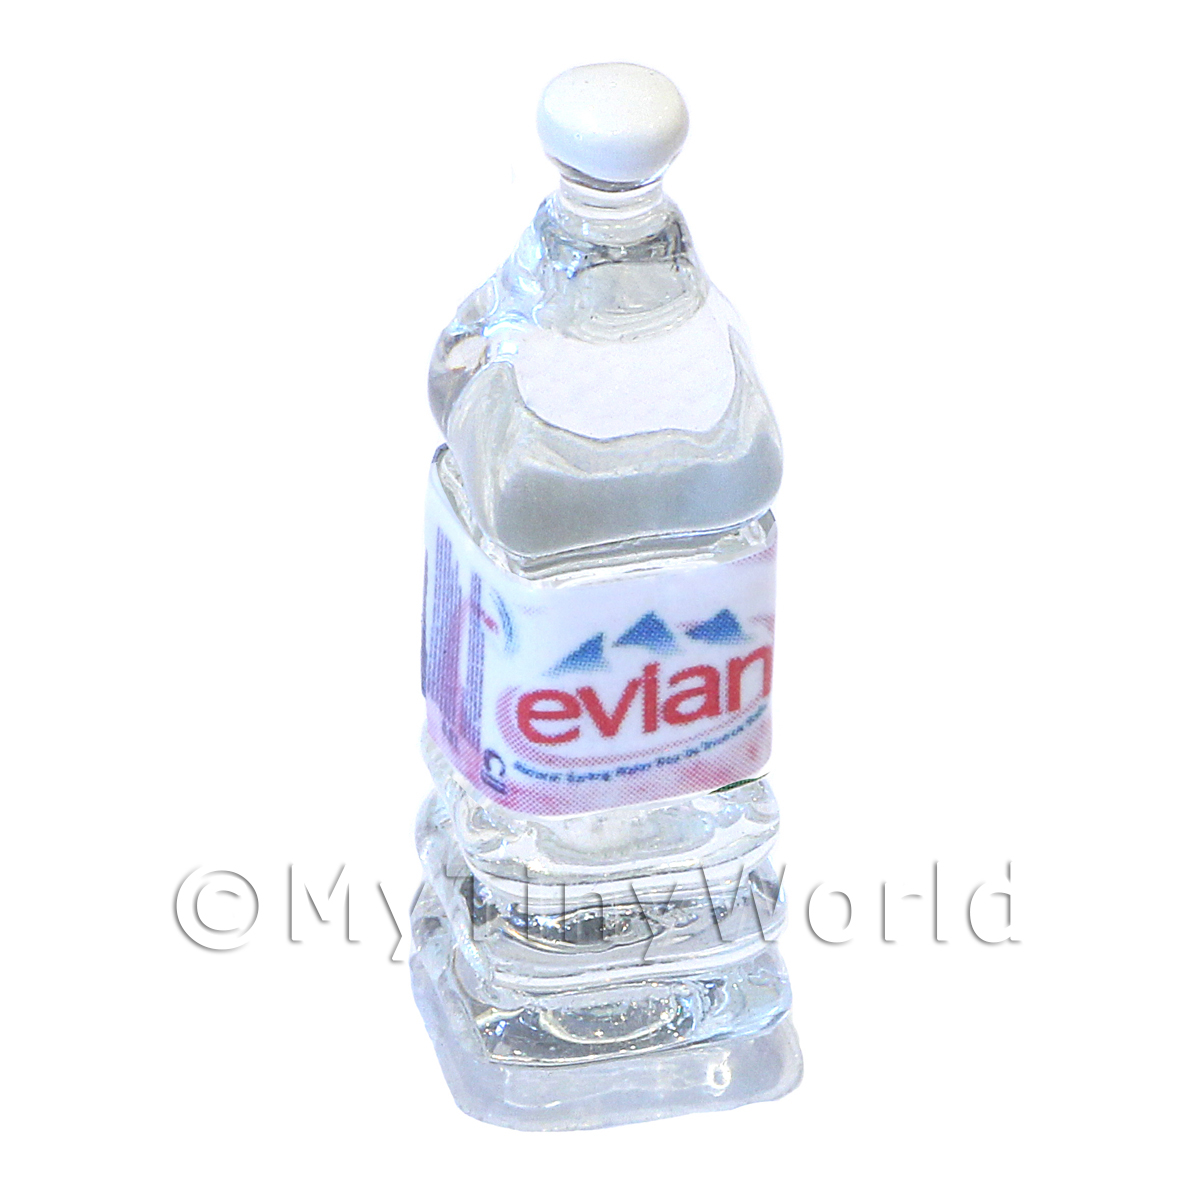 Dolls House Miniature Large Evian Brand Square Water Bottle